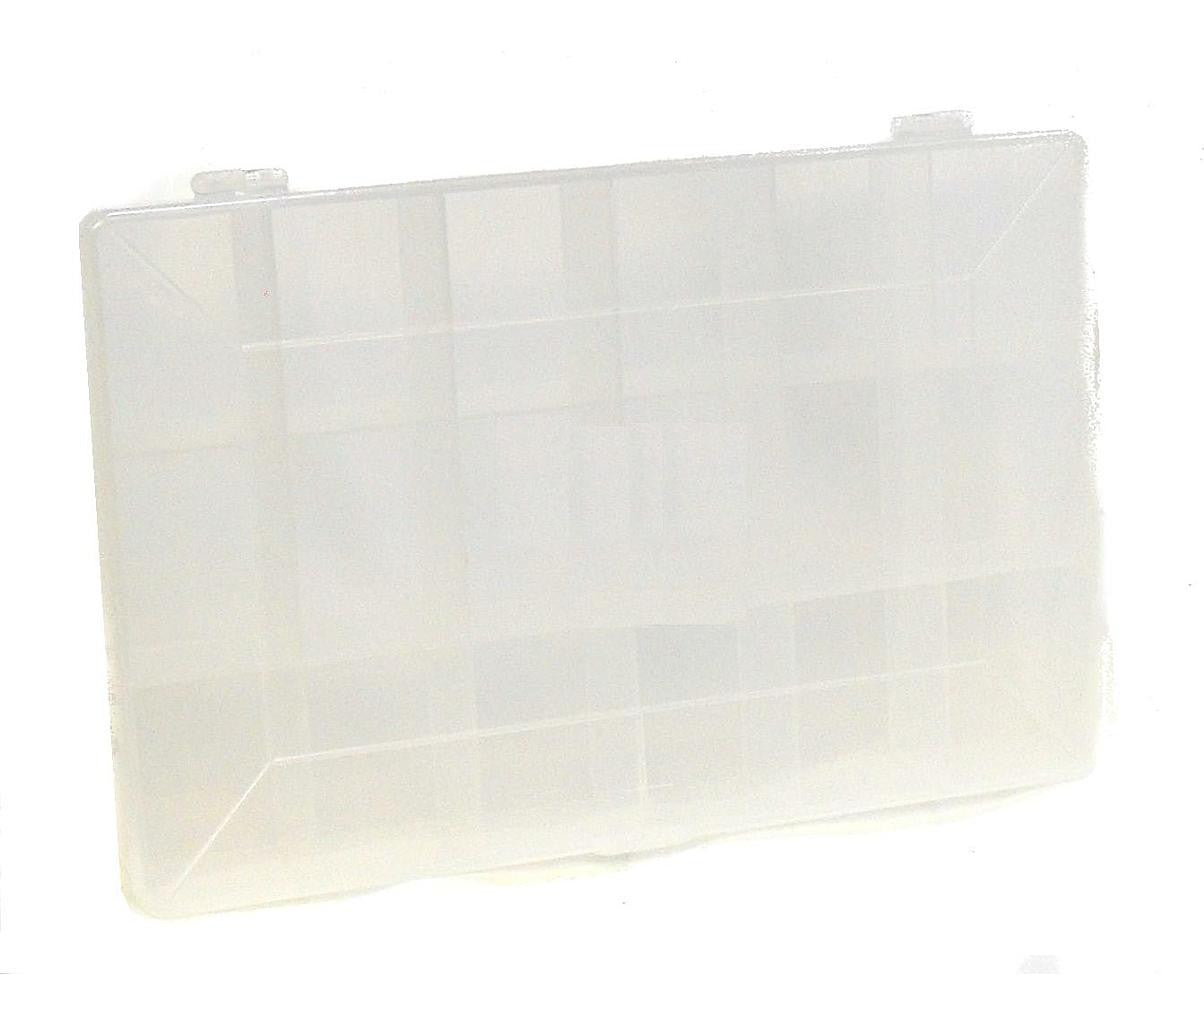 05223 - Clear Display Box 15 compartments - Lampfix - sparks-warehouse